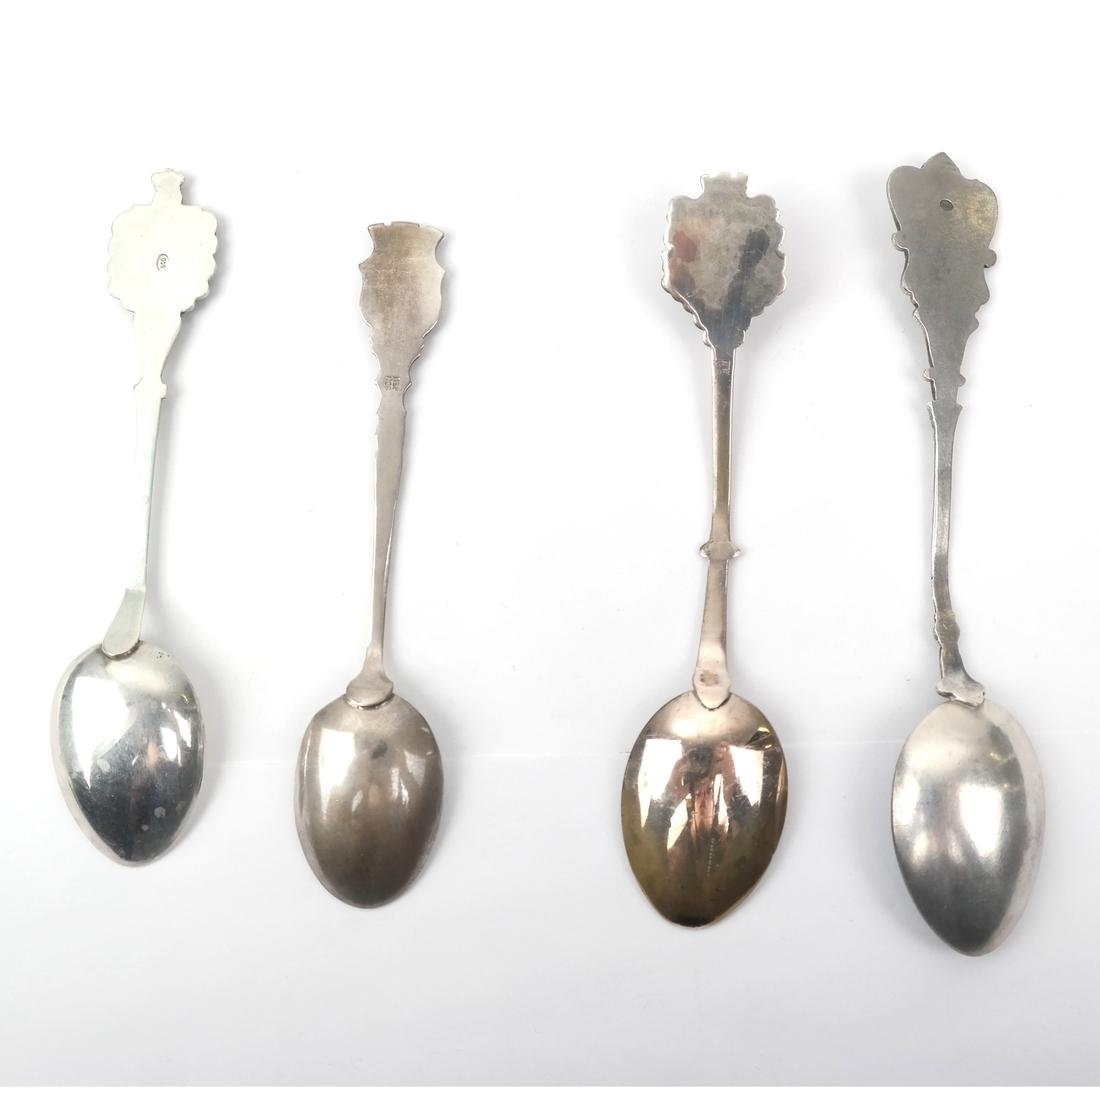 12 European .800 and .900 Silver Spoons - 3